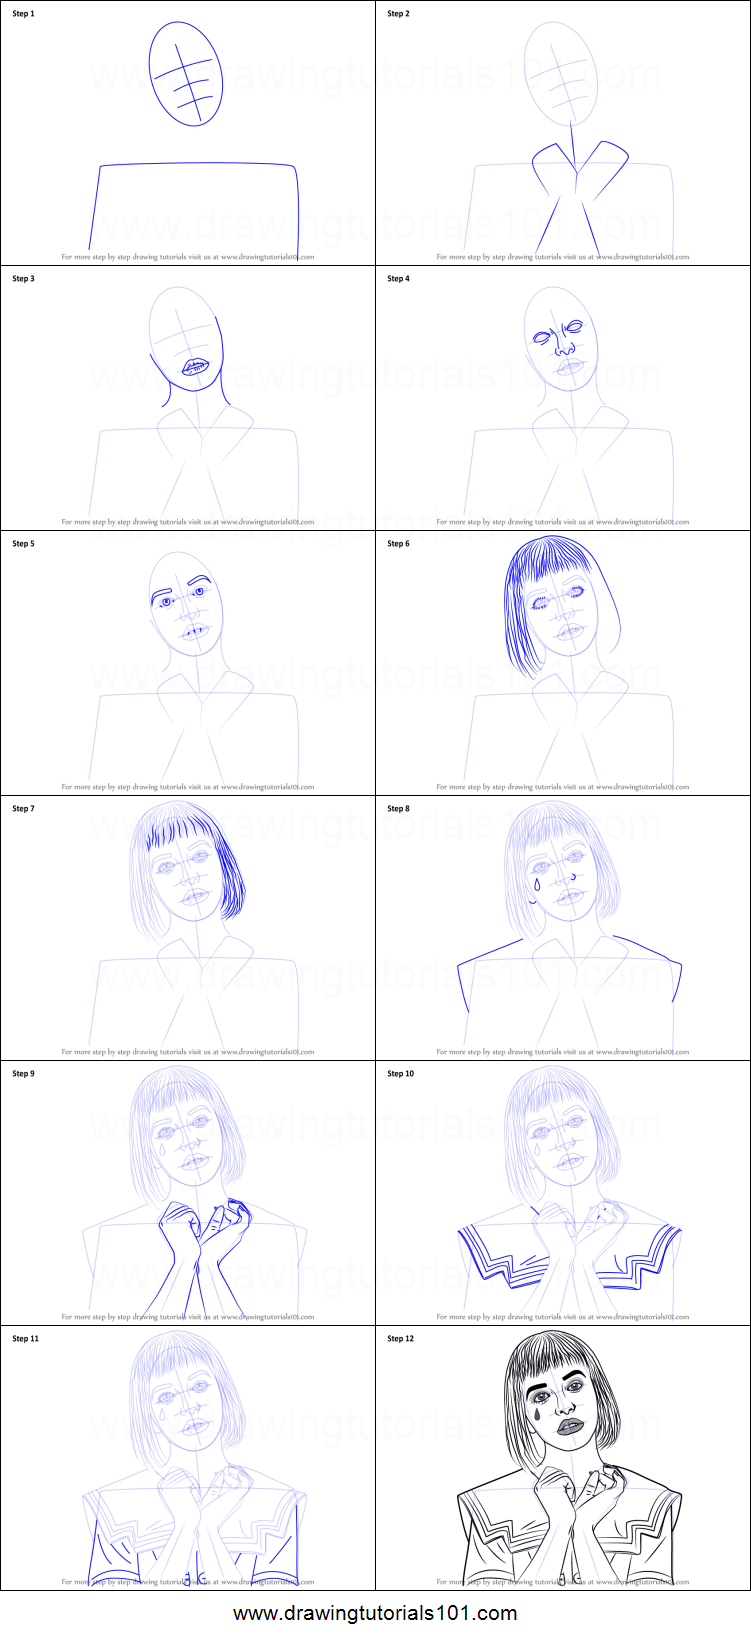 How To Draw Melanie Martinez